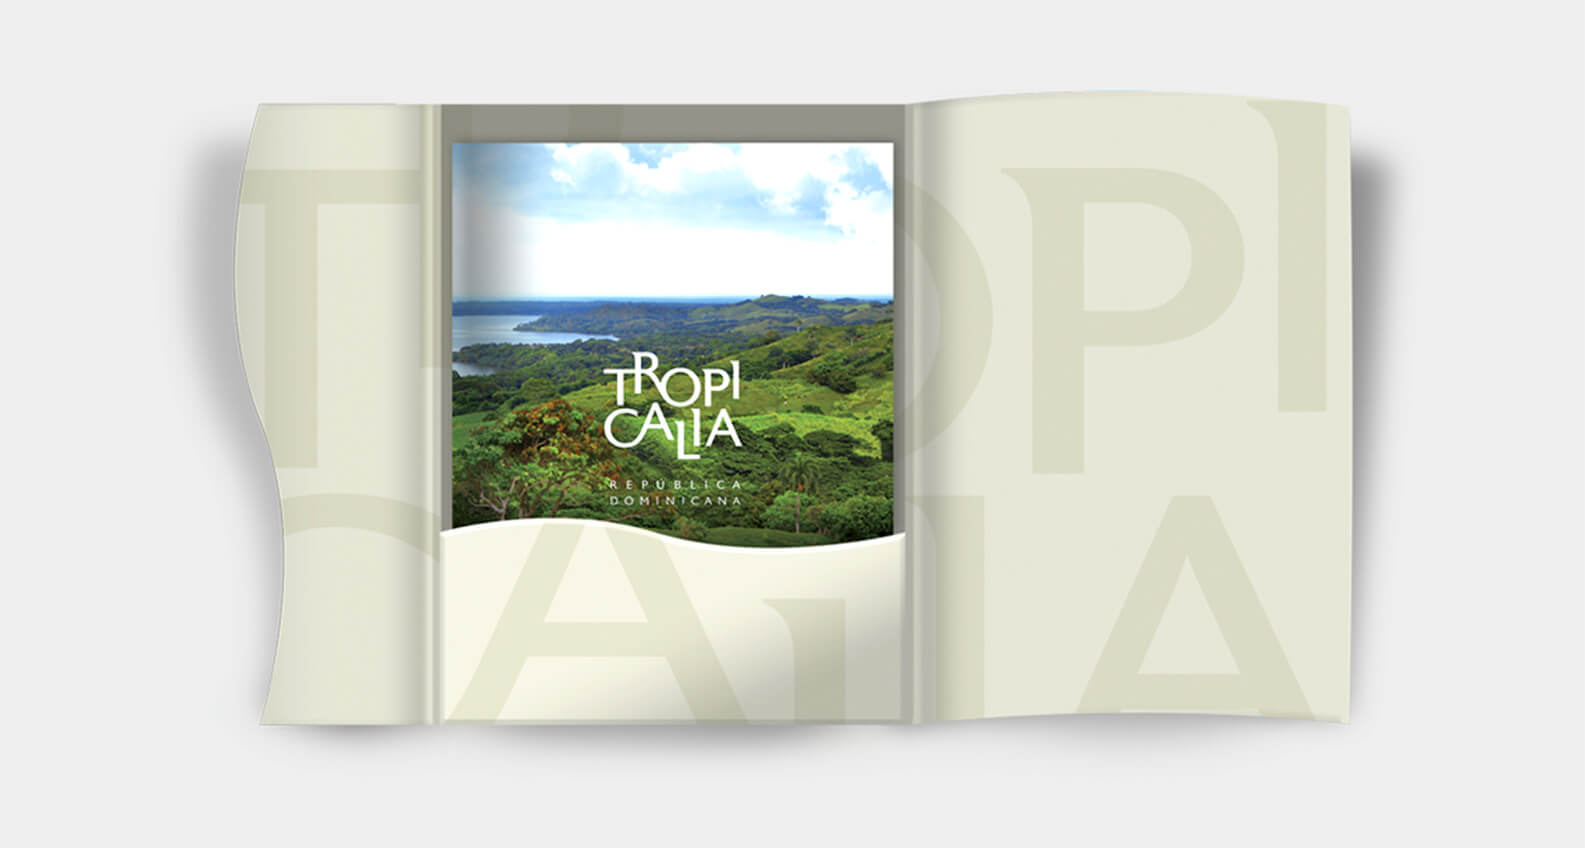 Tropicalia book design by Jacober Creative